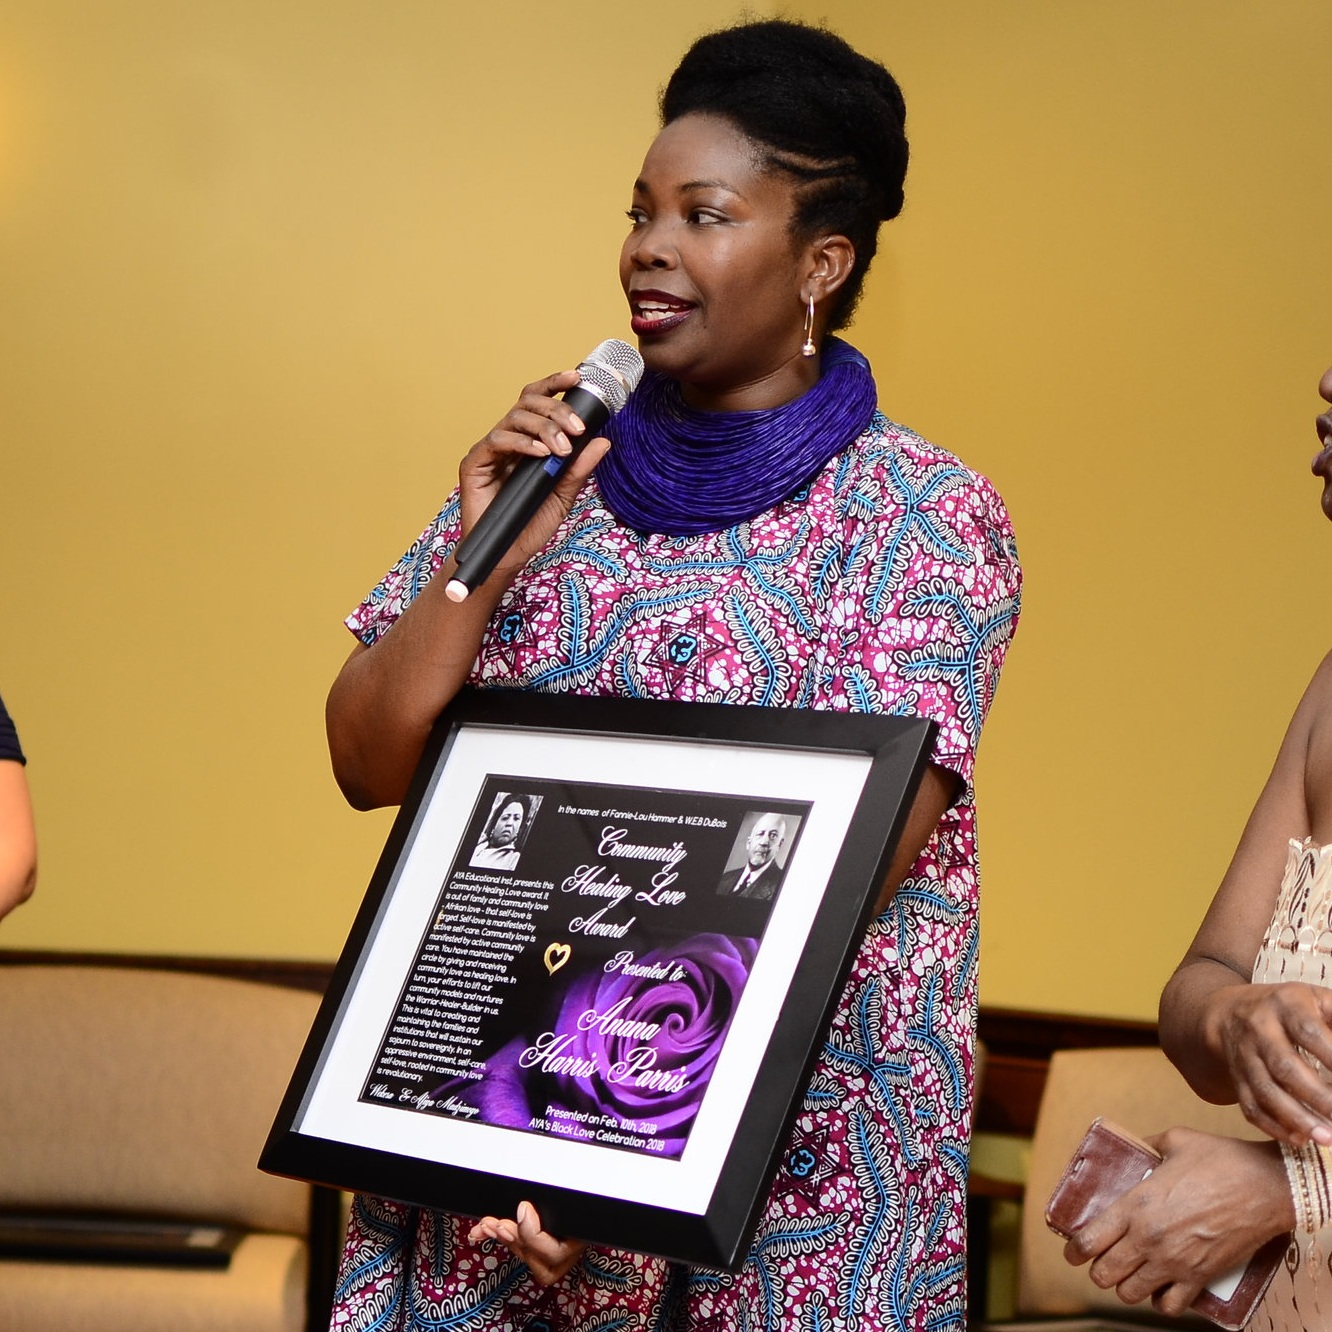 Community Love Honoree Anana Harris-Parris